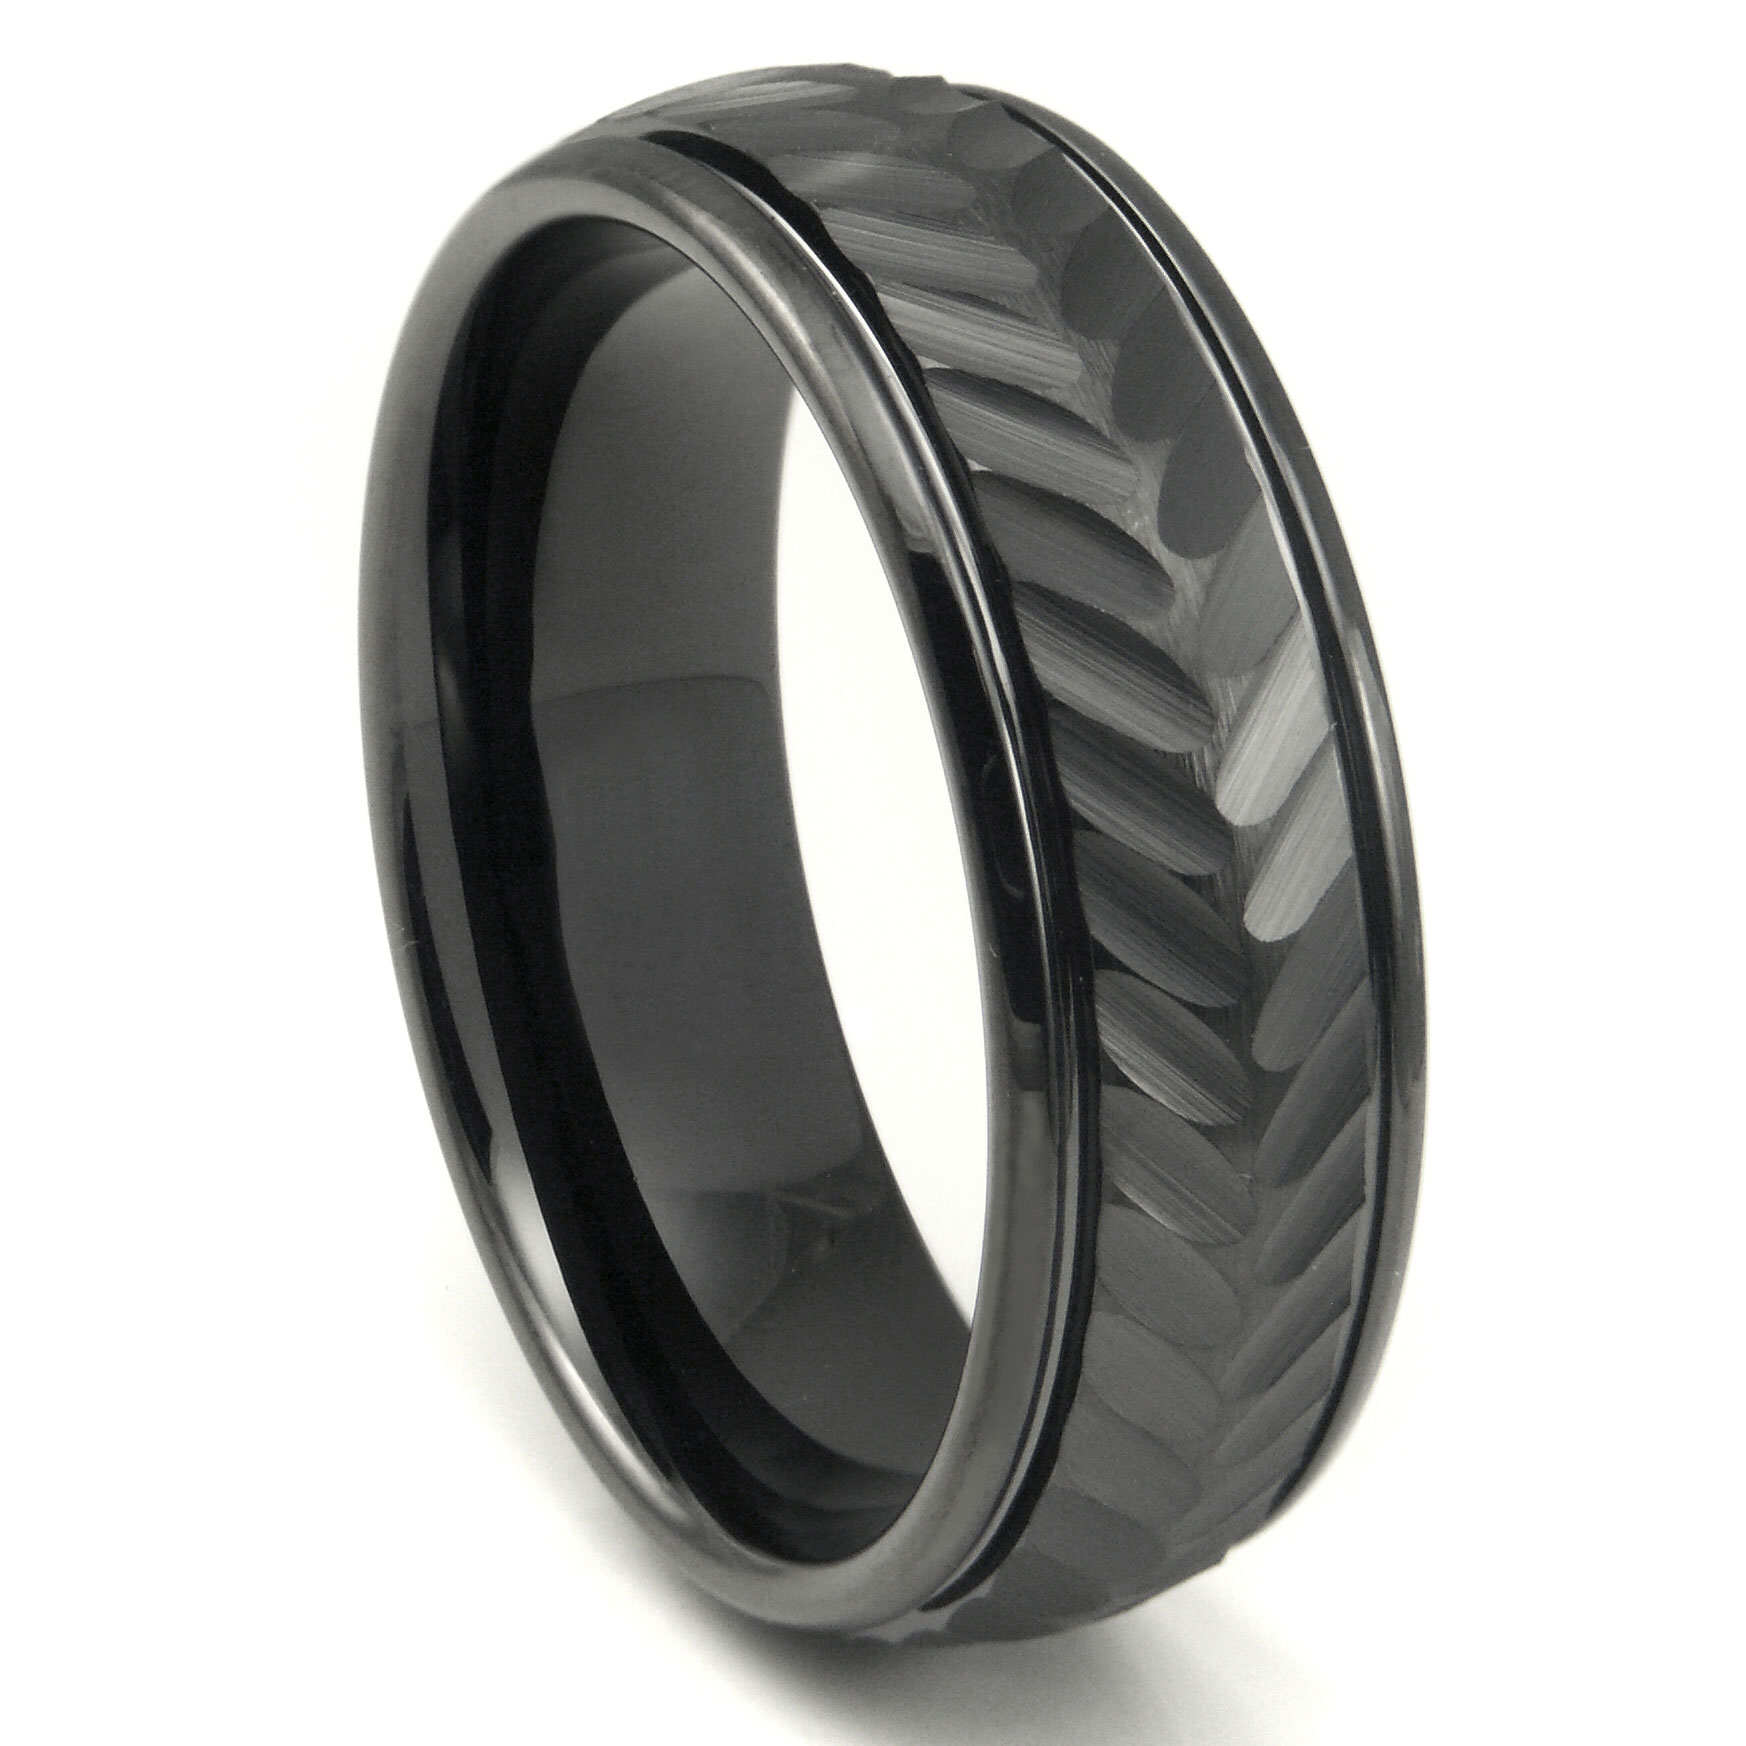 wedding amazon and band titanium s edges black com beveled rings inlay mens men fiber dp ring carbon